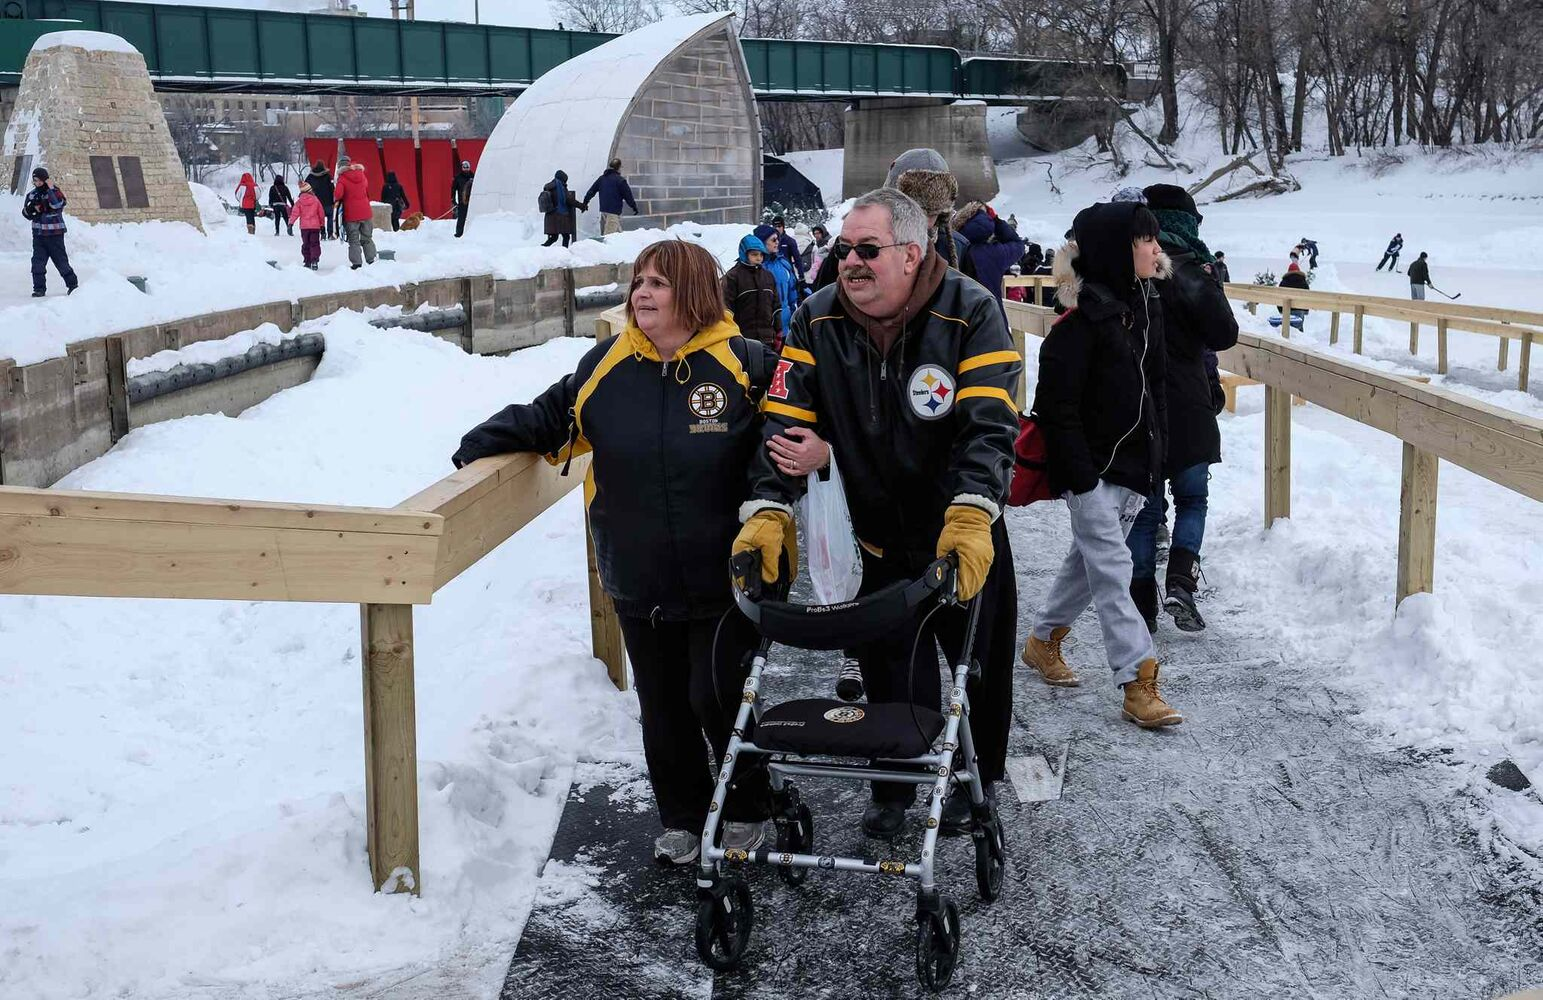 Taking it all in on a busy day at The Forks. MIKE DEAL / WINNIPEG FREE PRESS